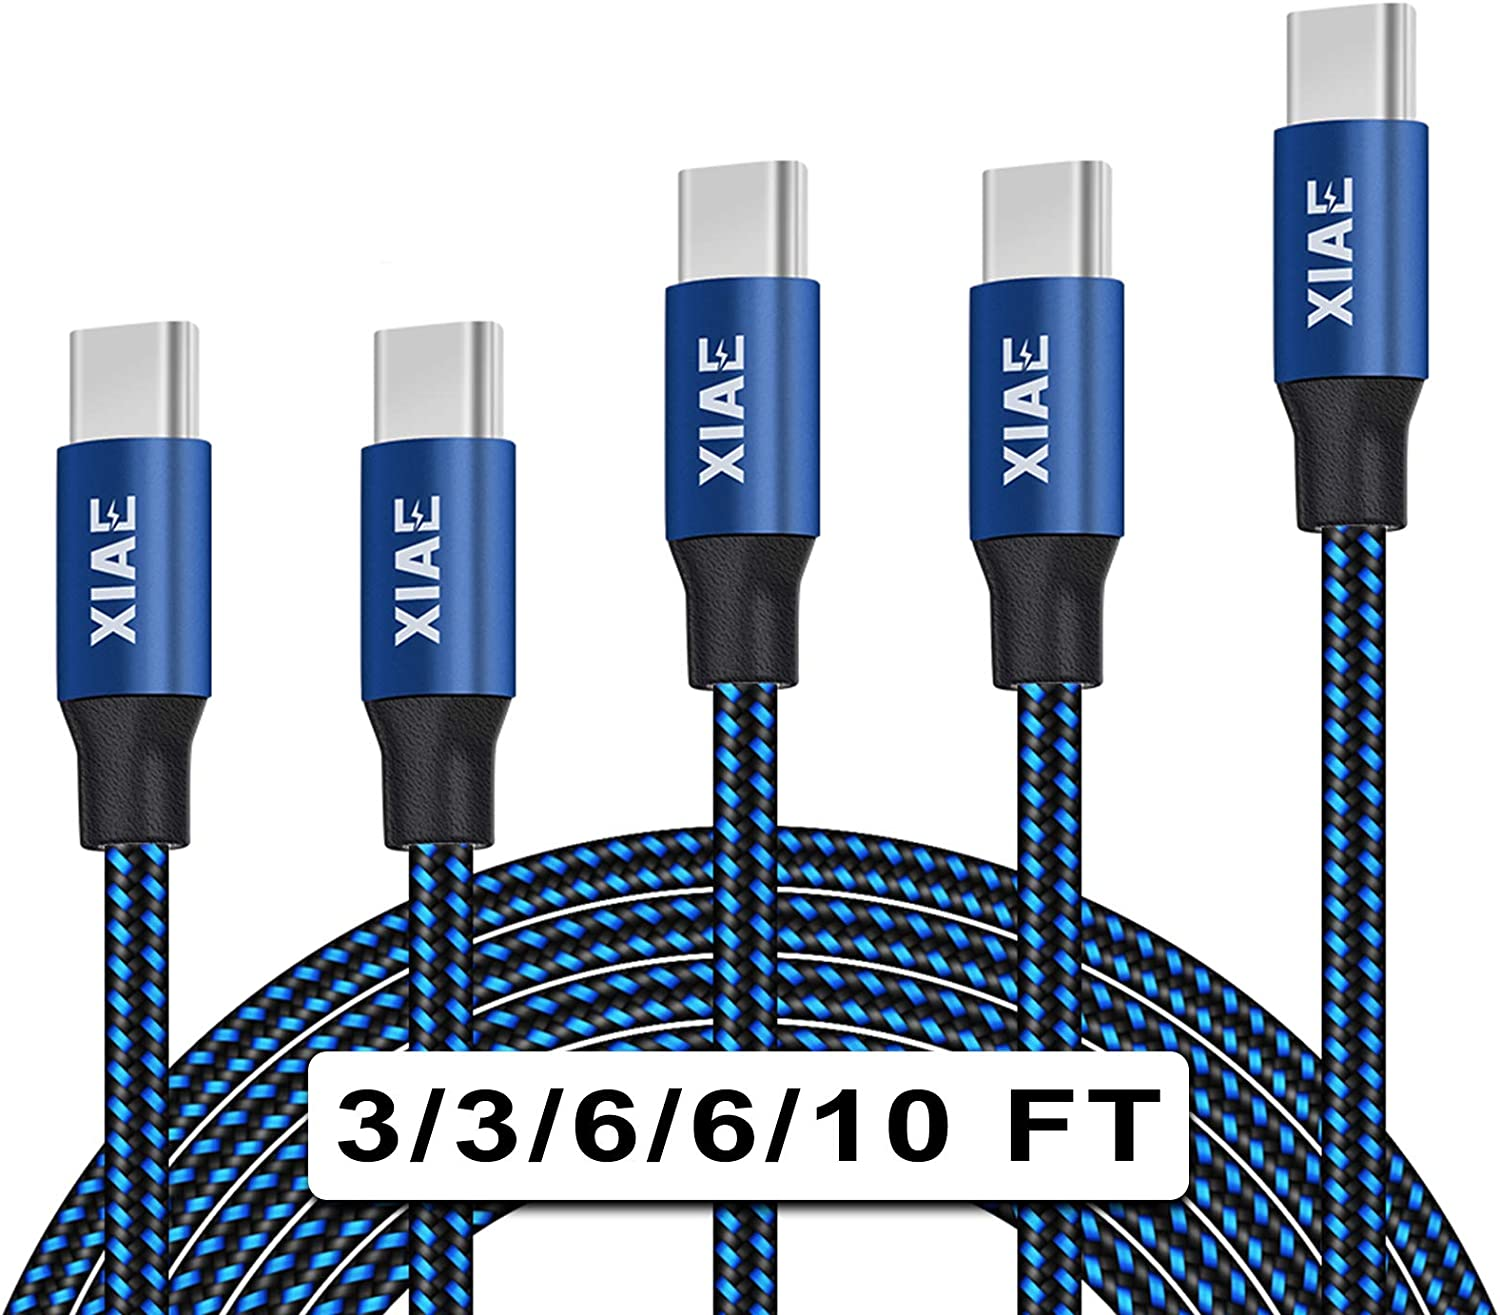 Huawei P10 /& P10 Plus//Xiaomi Mi 6 /& Max 2 and for Galaxy S8 /& S8 // LG G6 lekai Compact and Lightweight Cable 1m 2A Output USB to USB-C//Type-C Nylon Weave Style Data Sync Charging Cable